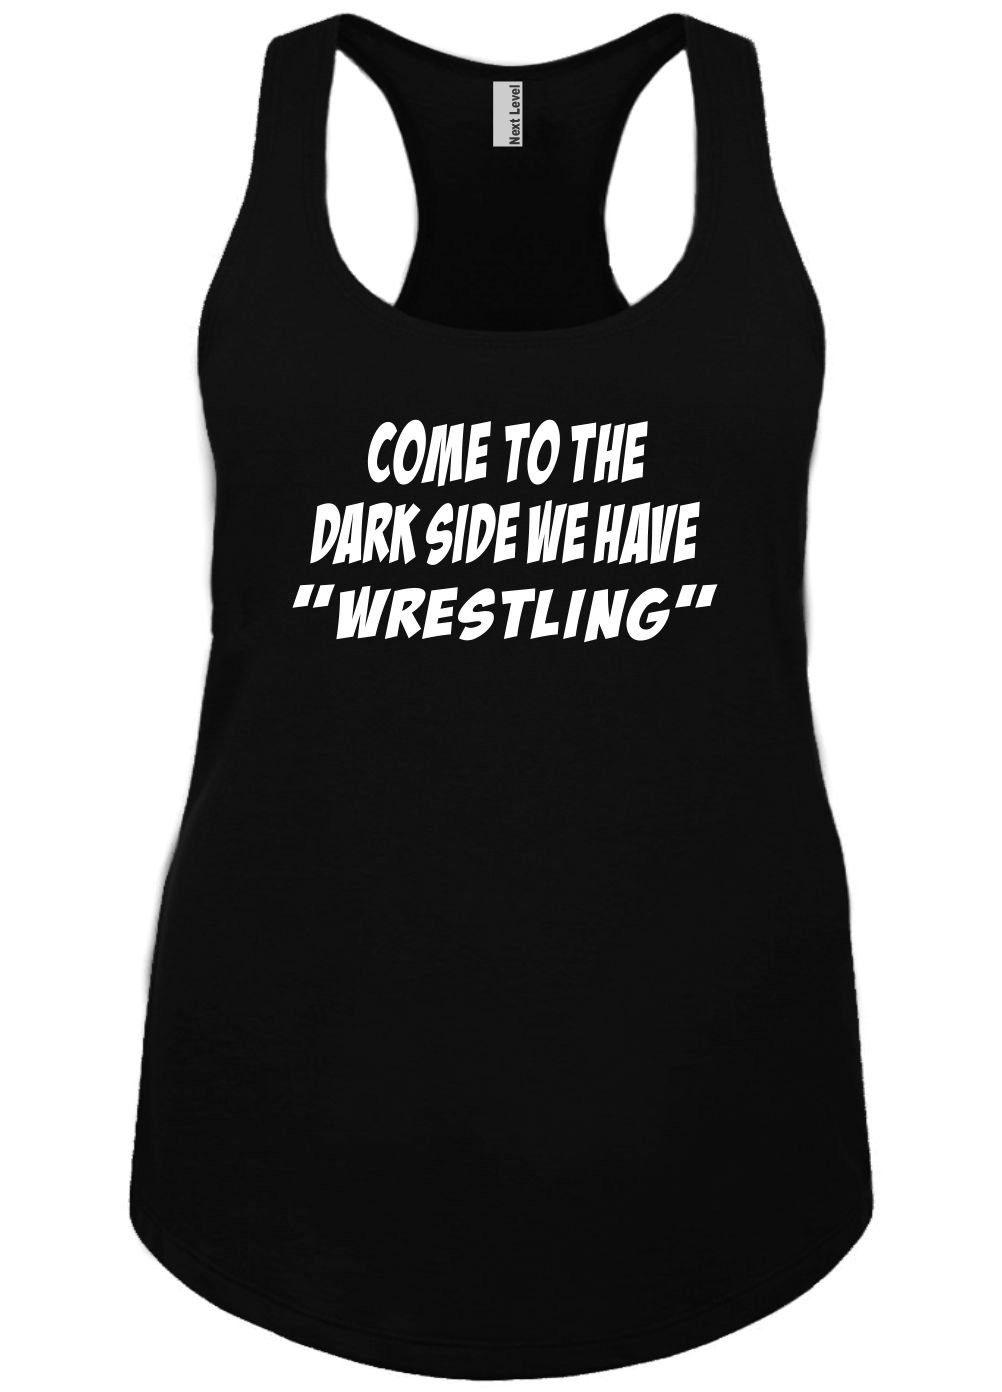 Mighty Ambitious Ladies Funny Tank Top Come To The Darkside We Have Wrestling 2X